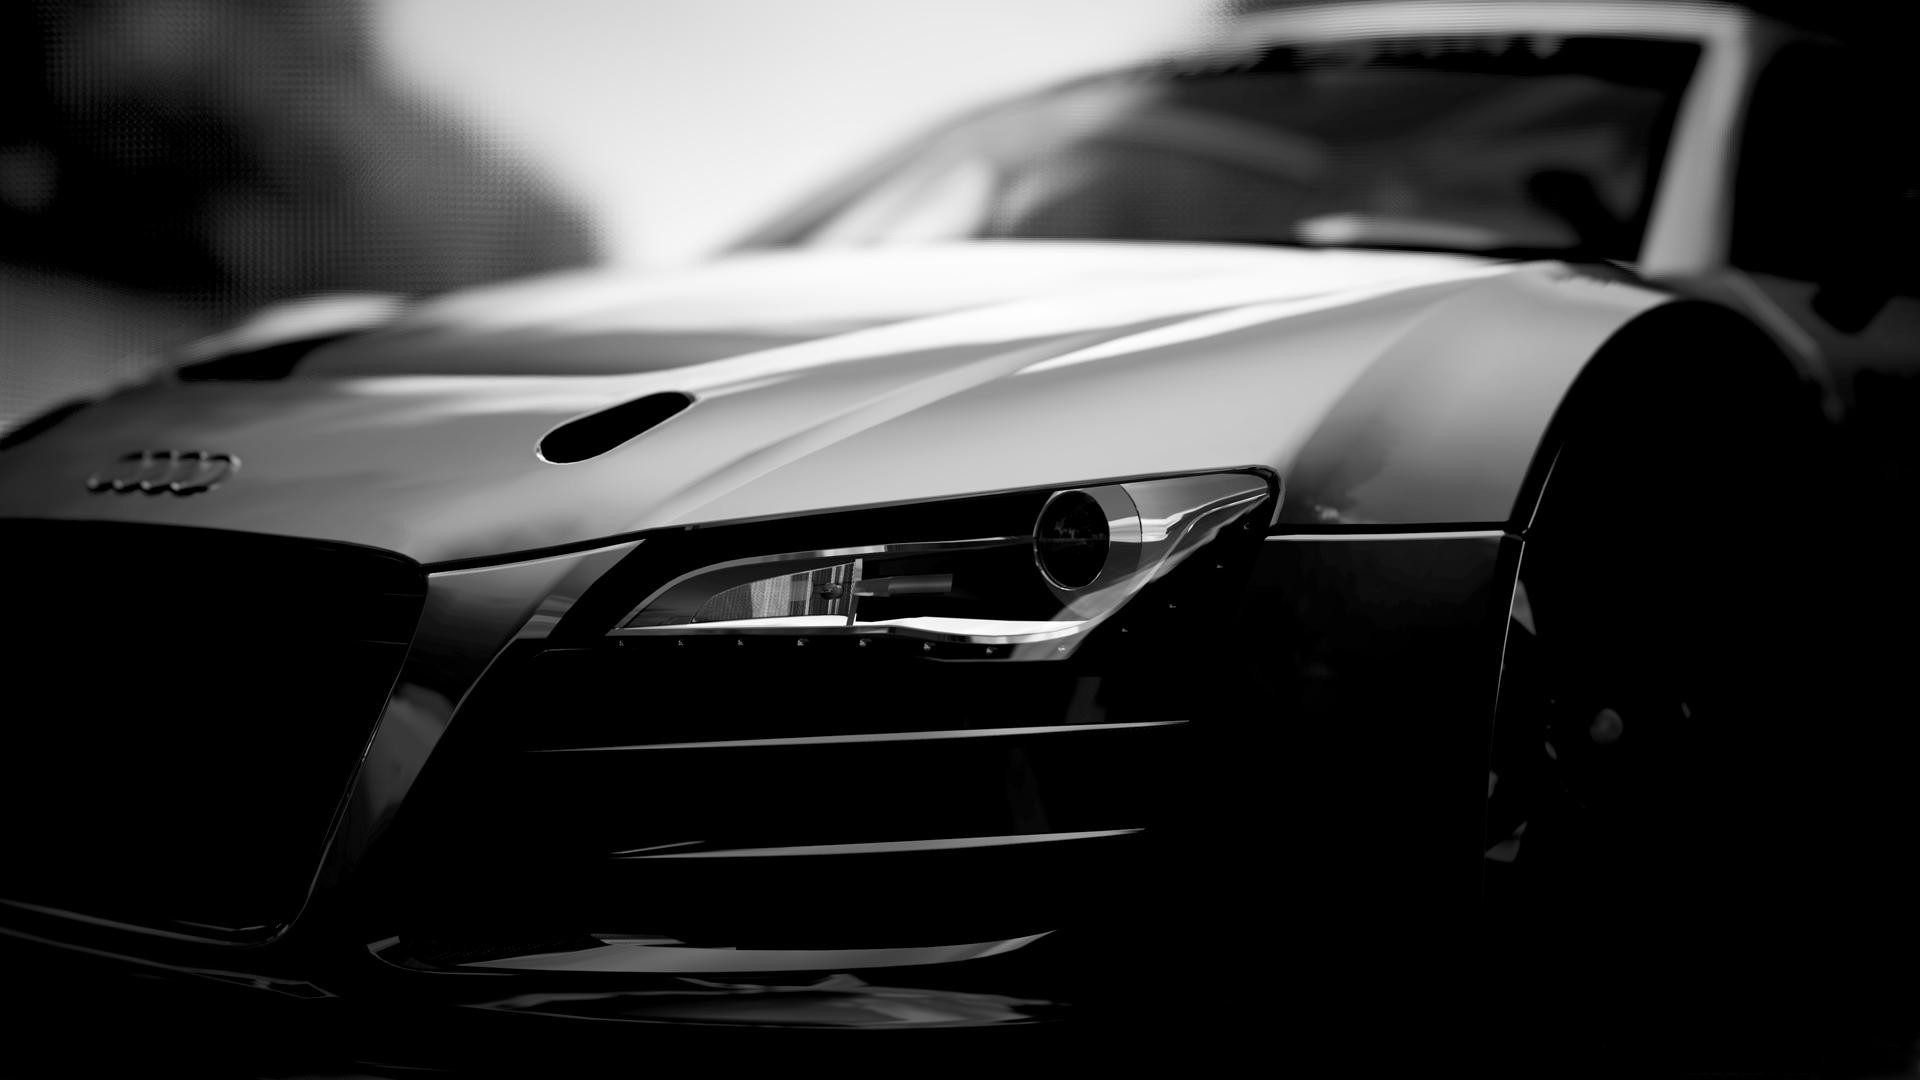 Audi R8 1080p Wallpapers Audi R8 Black And White 2174102 Hd Wallpaper Backgrounds Download